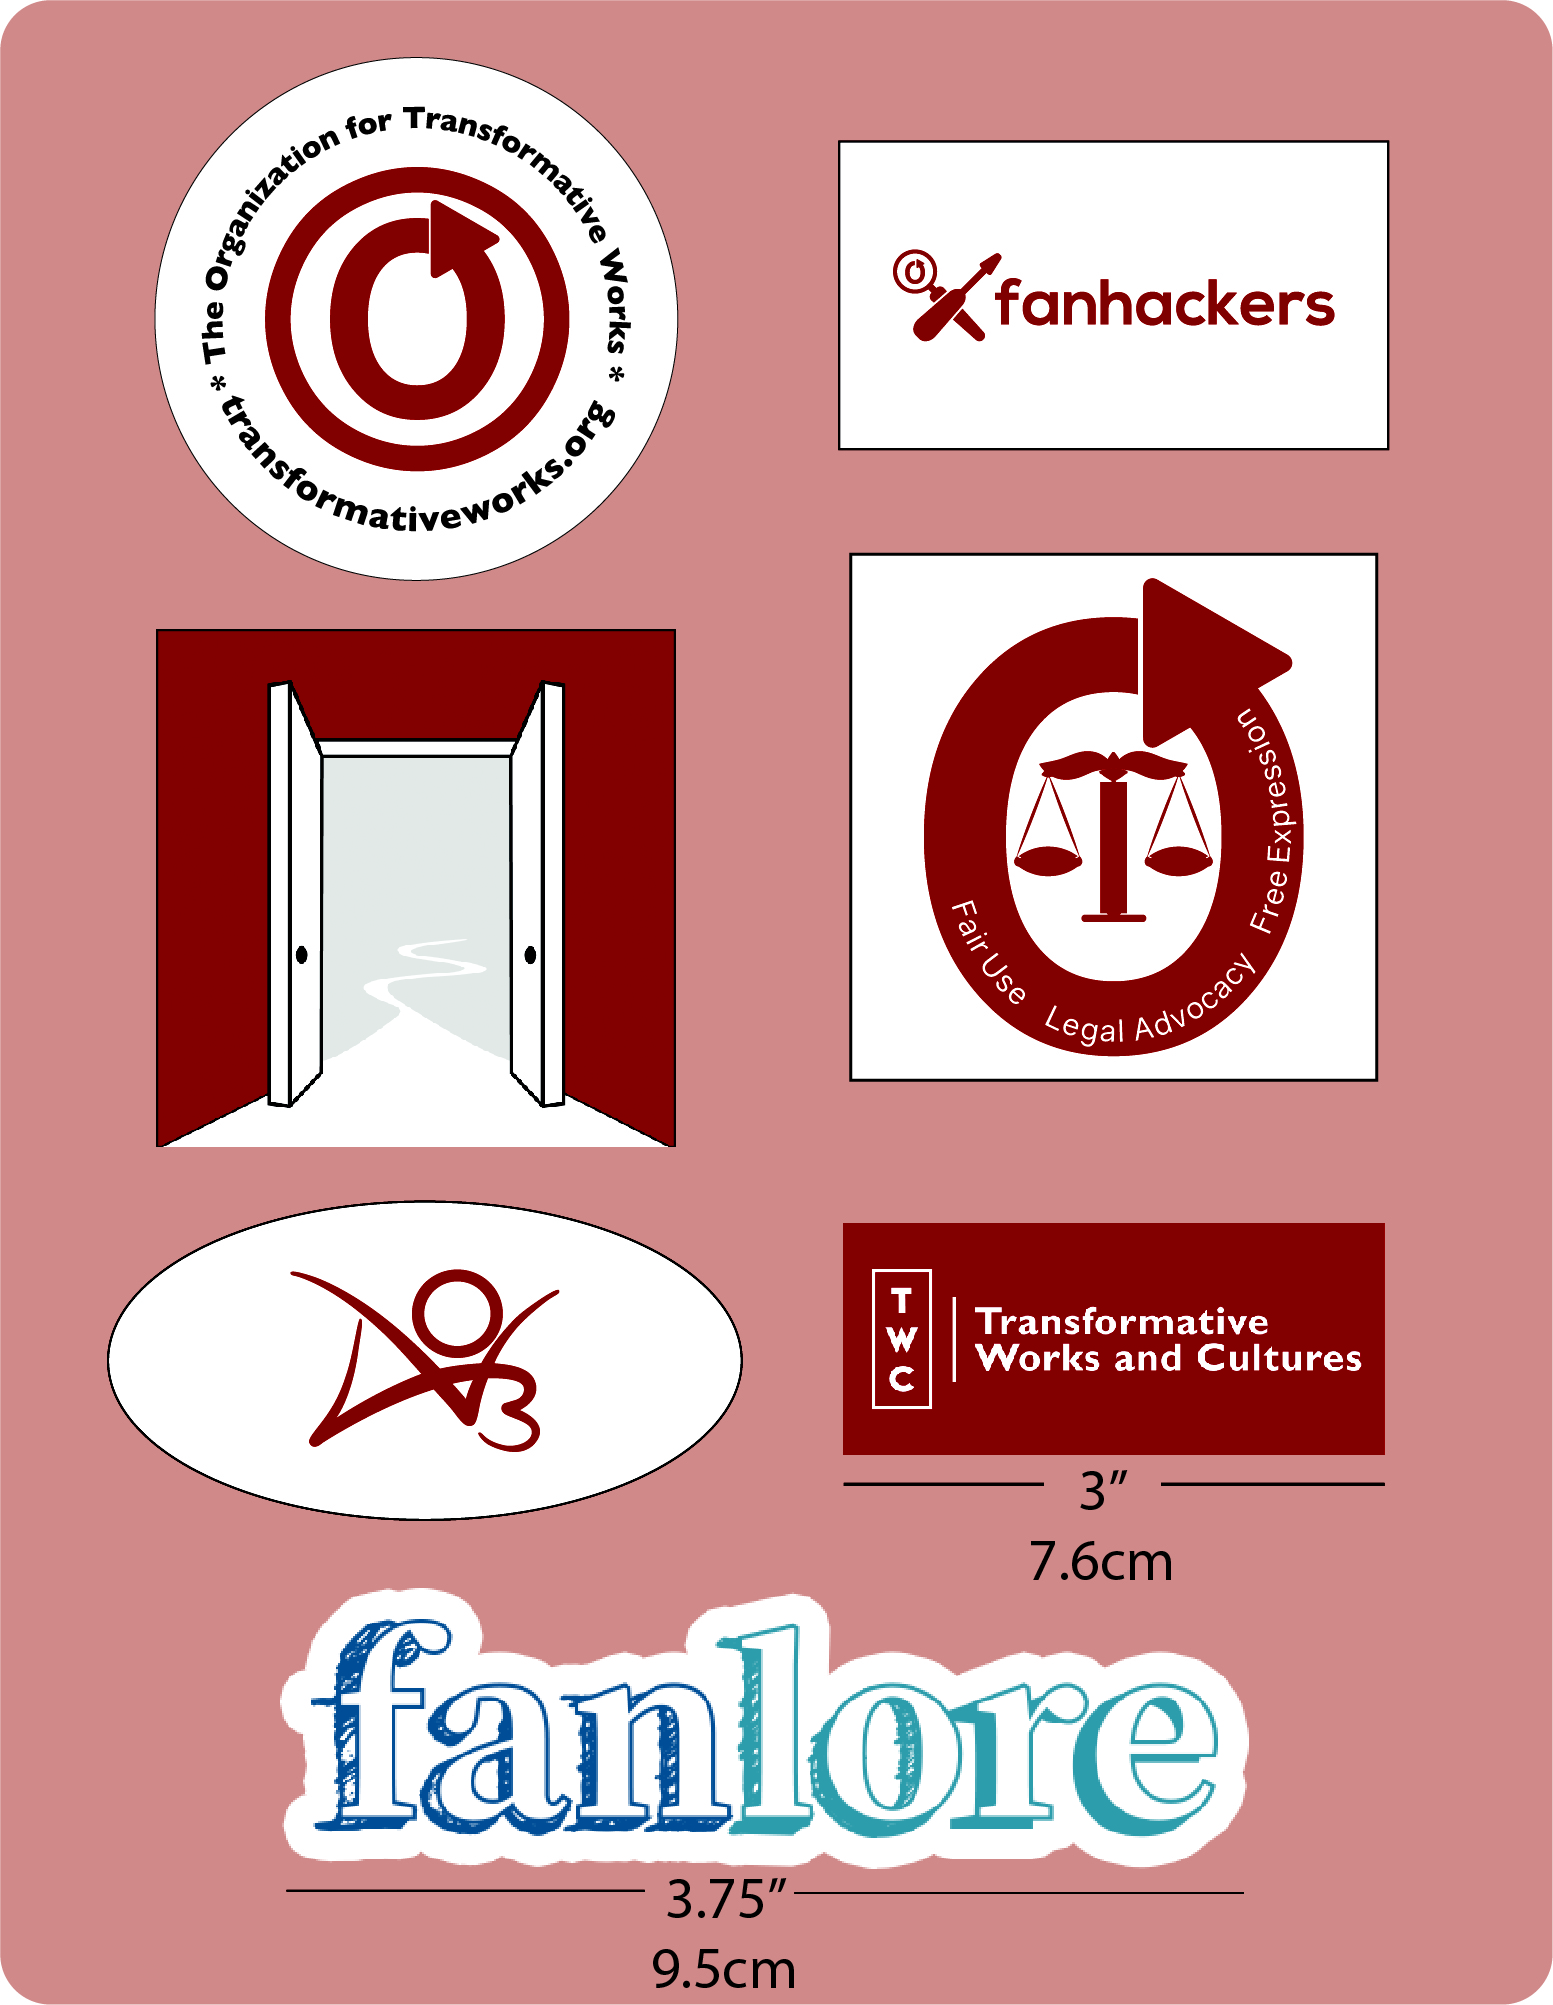 "OTW Sticker Set (contains seven stickers). The first six stickers measure 7.6cm wide: (1) A white circle with the red OTW logo, a circular arrow inside a circle. Around the logo in black are the words ""Organization for Transformative Works"" and the URL ""transformativeworks.org"". (2) A white rectangle with the red Fanhackers logo, two hand tools crossed in a X. (3) A red square with the white and grey Open Doors logo, French doors opening to reveal a path. (4) A white square with the Legal Advocacy logo, a circular arrow surrounding the scales of justice. The arrow reads ""Fair Use, Legal Advocacy, Free Expression"". (5) A white oval with the red Archive of Our Own logo, a stylized AO3. (6) A red rectangle with the TWC logo in white; on the left are the letters TWC in a vertical arrangement, and on the right are the words ""Transformative Works and Cultures"". (7) A die cut of the Fanlore logo, blue text on a white background. This sticker measures 9.5cm long."